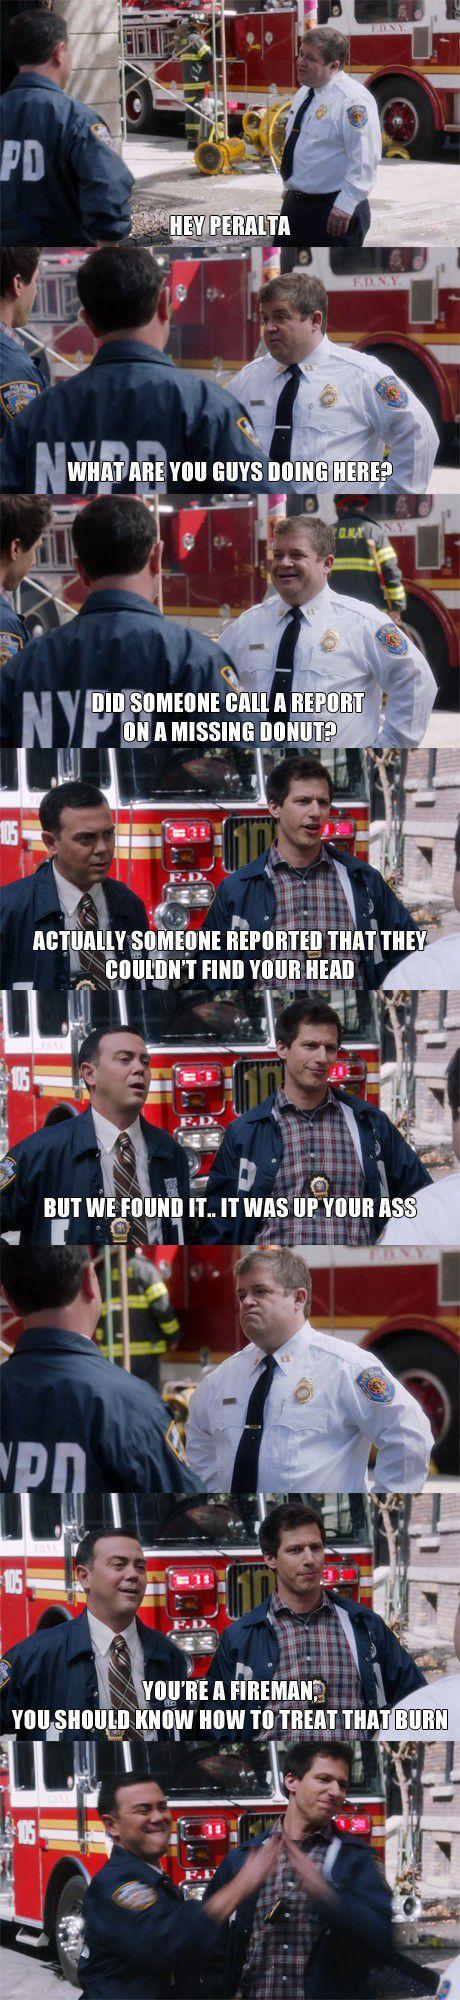 brooklyn-nine-nine-13-1546983541551.jpg